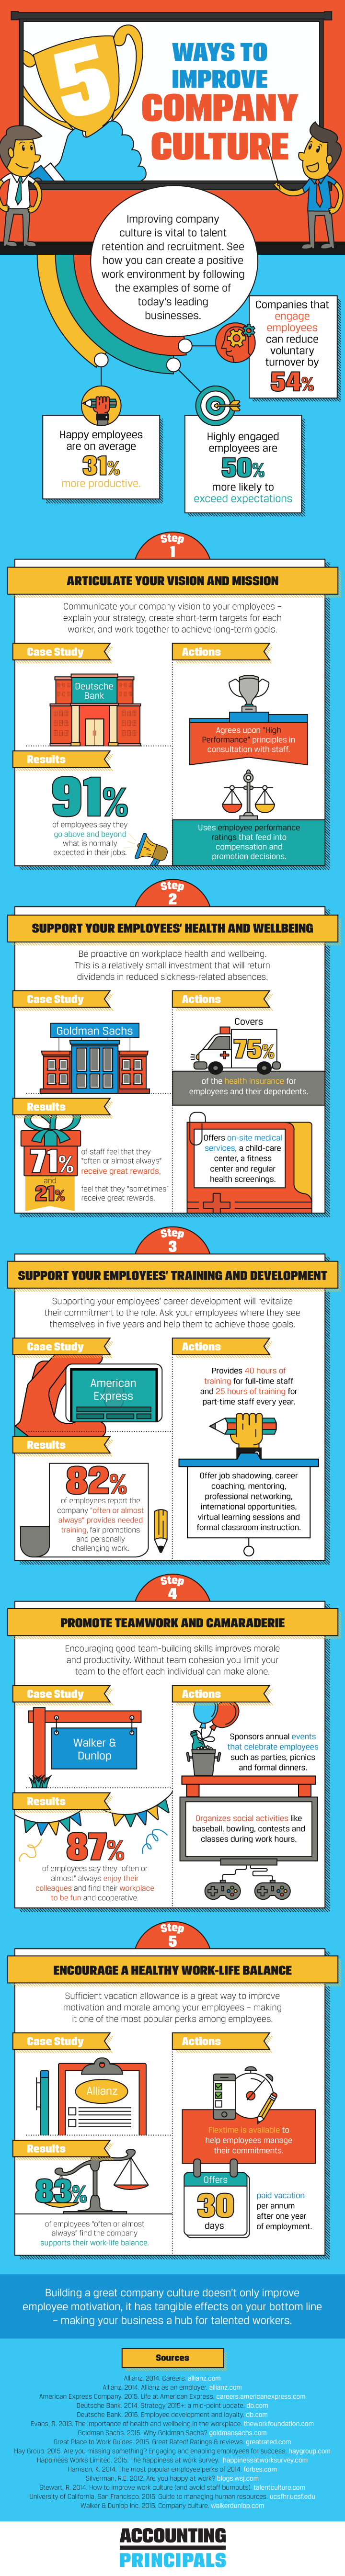 5 Ways to Improve Company Culture #infographic